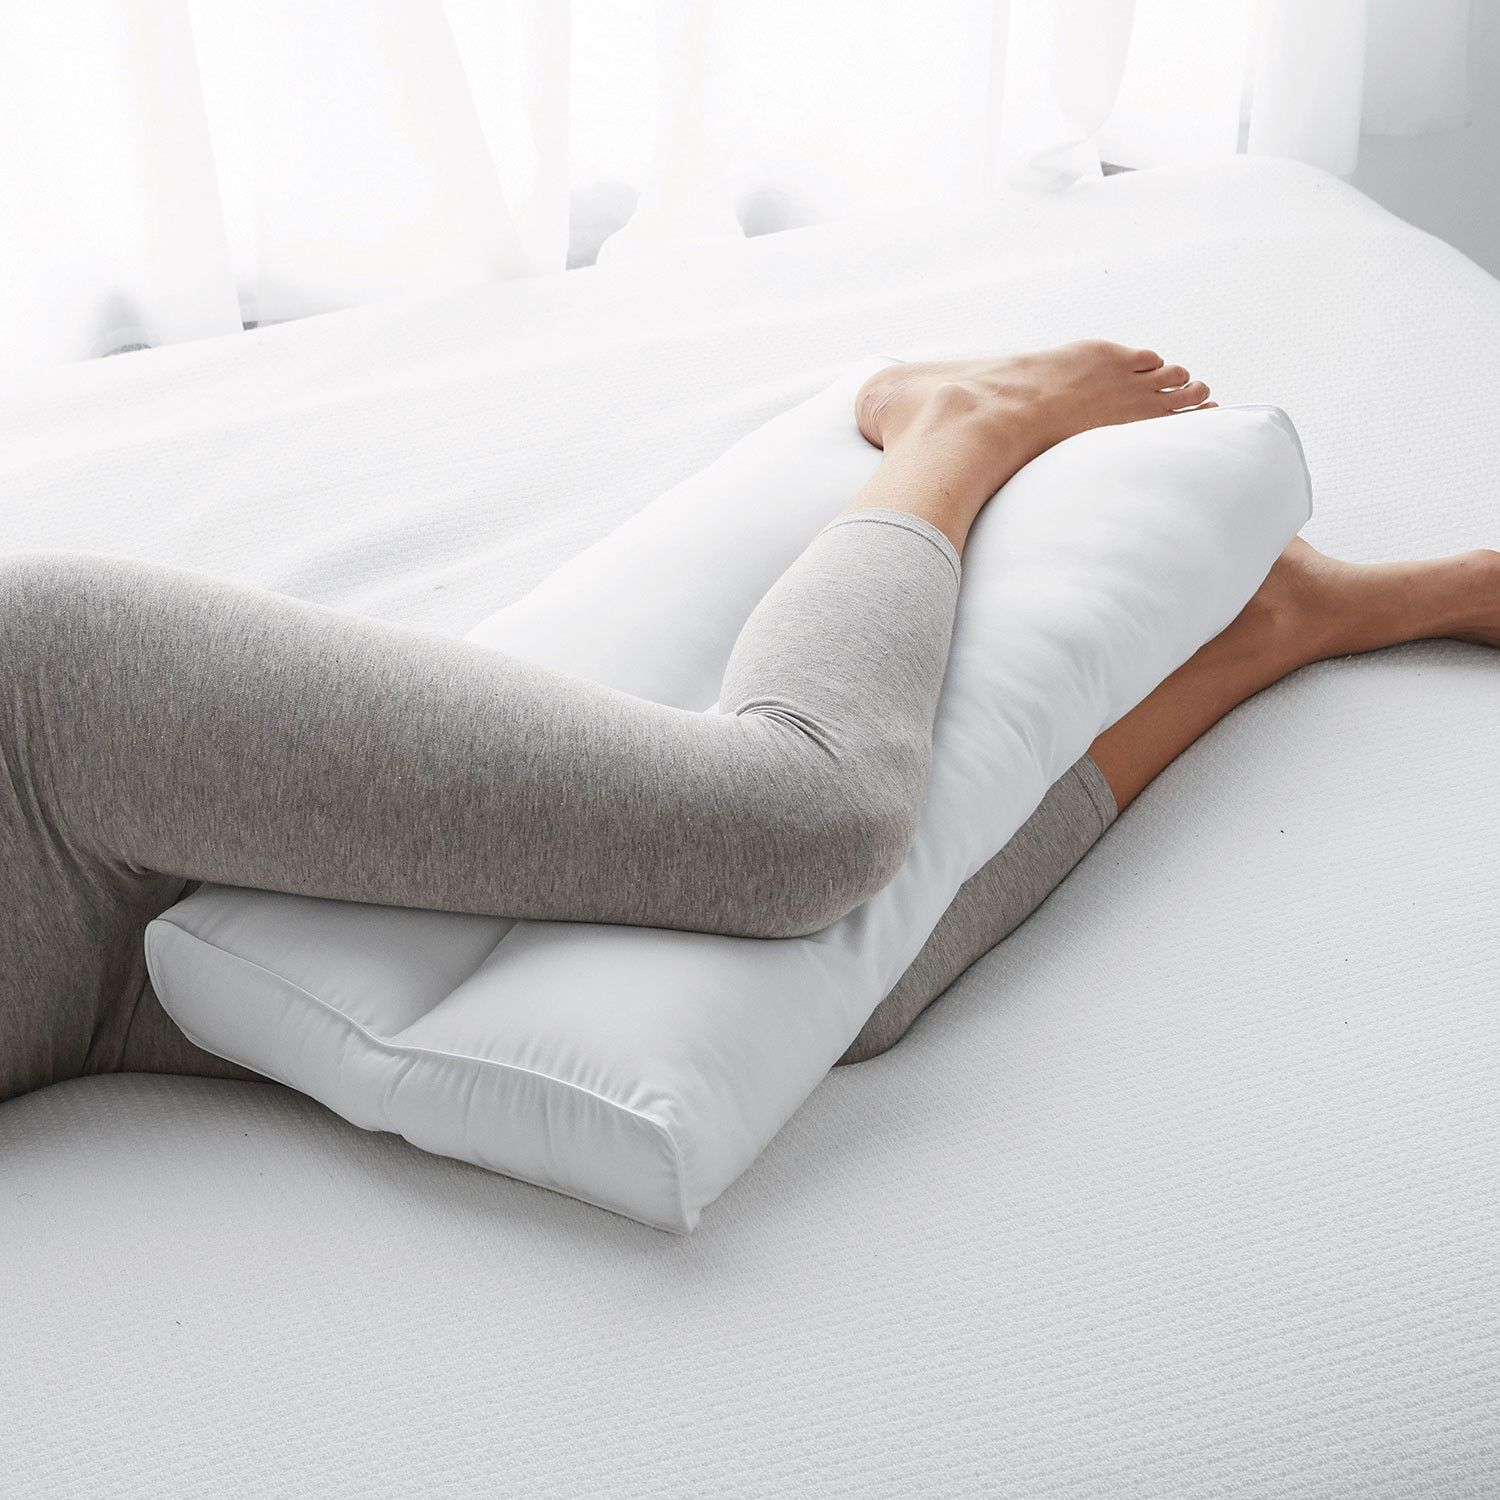 Posture Pillows Knee Leg Pillow The Company Store In 2020 With Images Leg Pillow